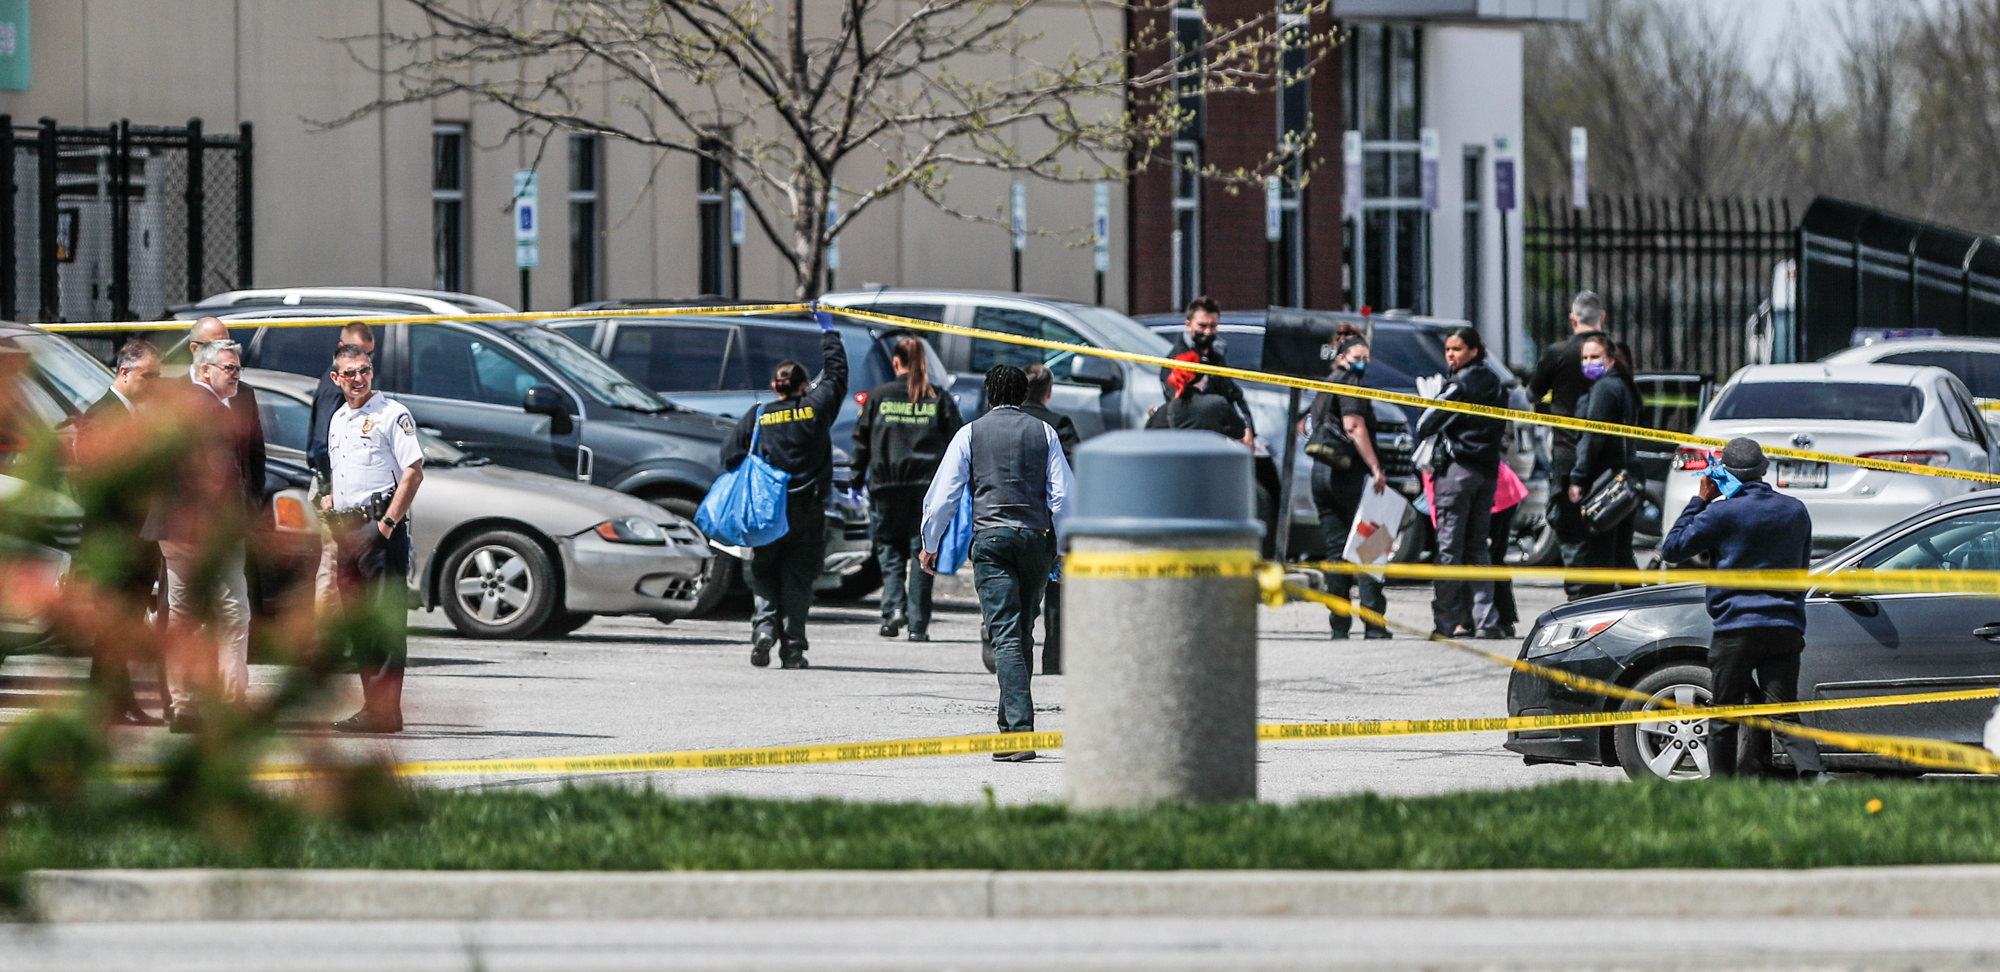 Investigators are on the scene following a mass shooting at a FedEx facility in Indianapolis, Indiana, U.S., April 16, 2021.  Michelle Pemberton-USA TODAY NETWORK via REUTERS